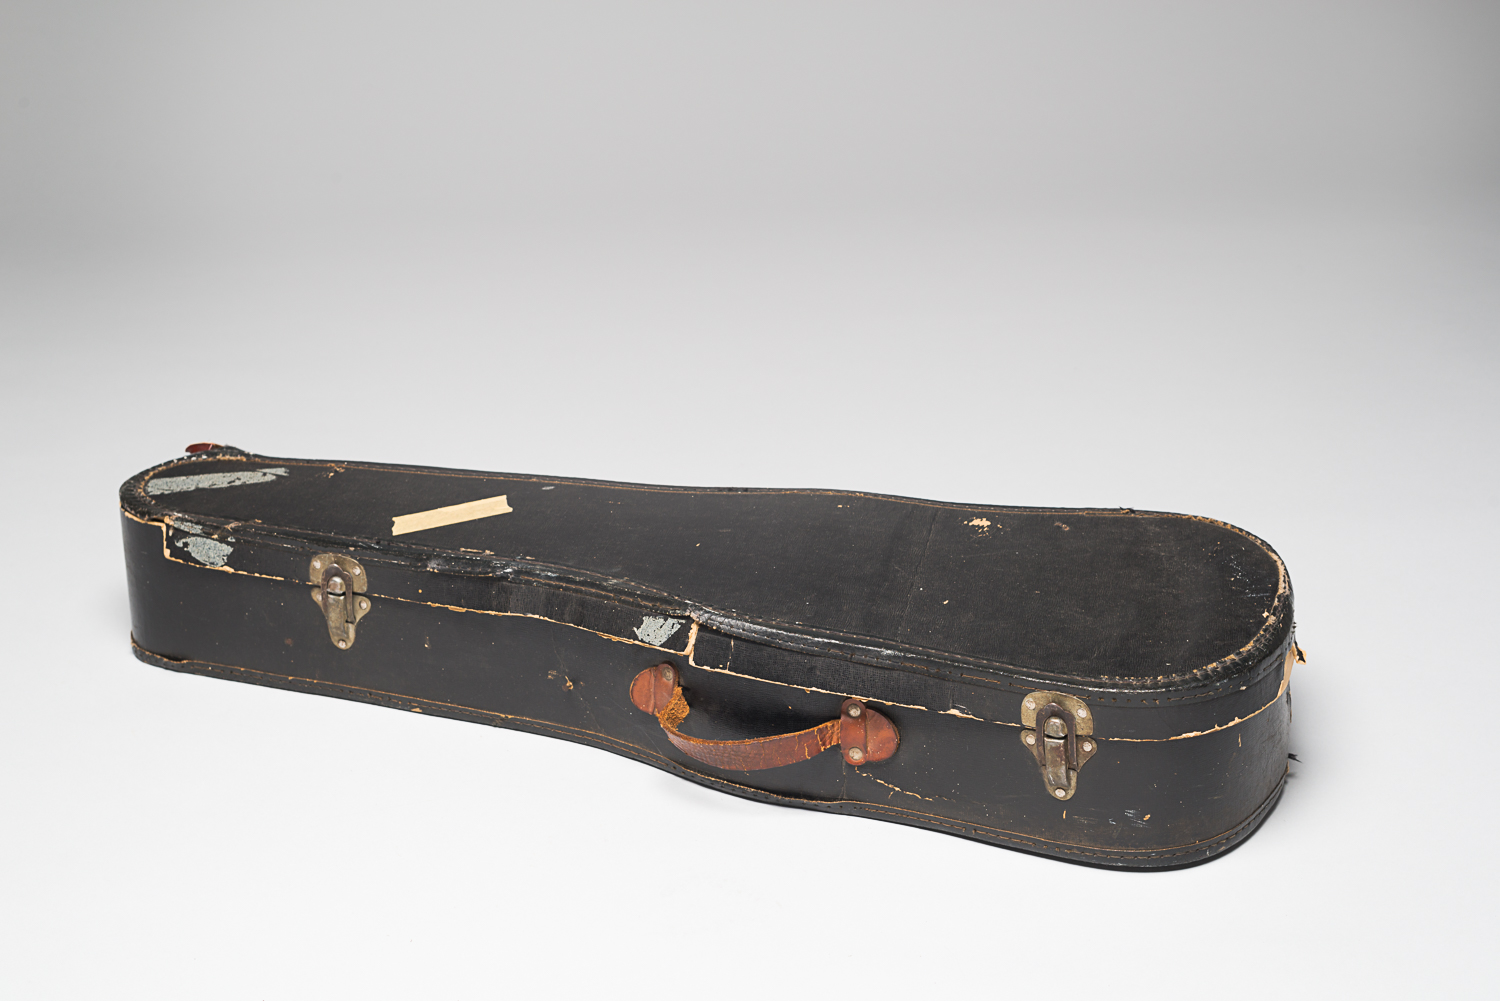 Alexander retrieved his violin from his family home after the war.